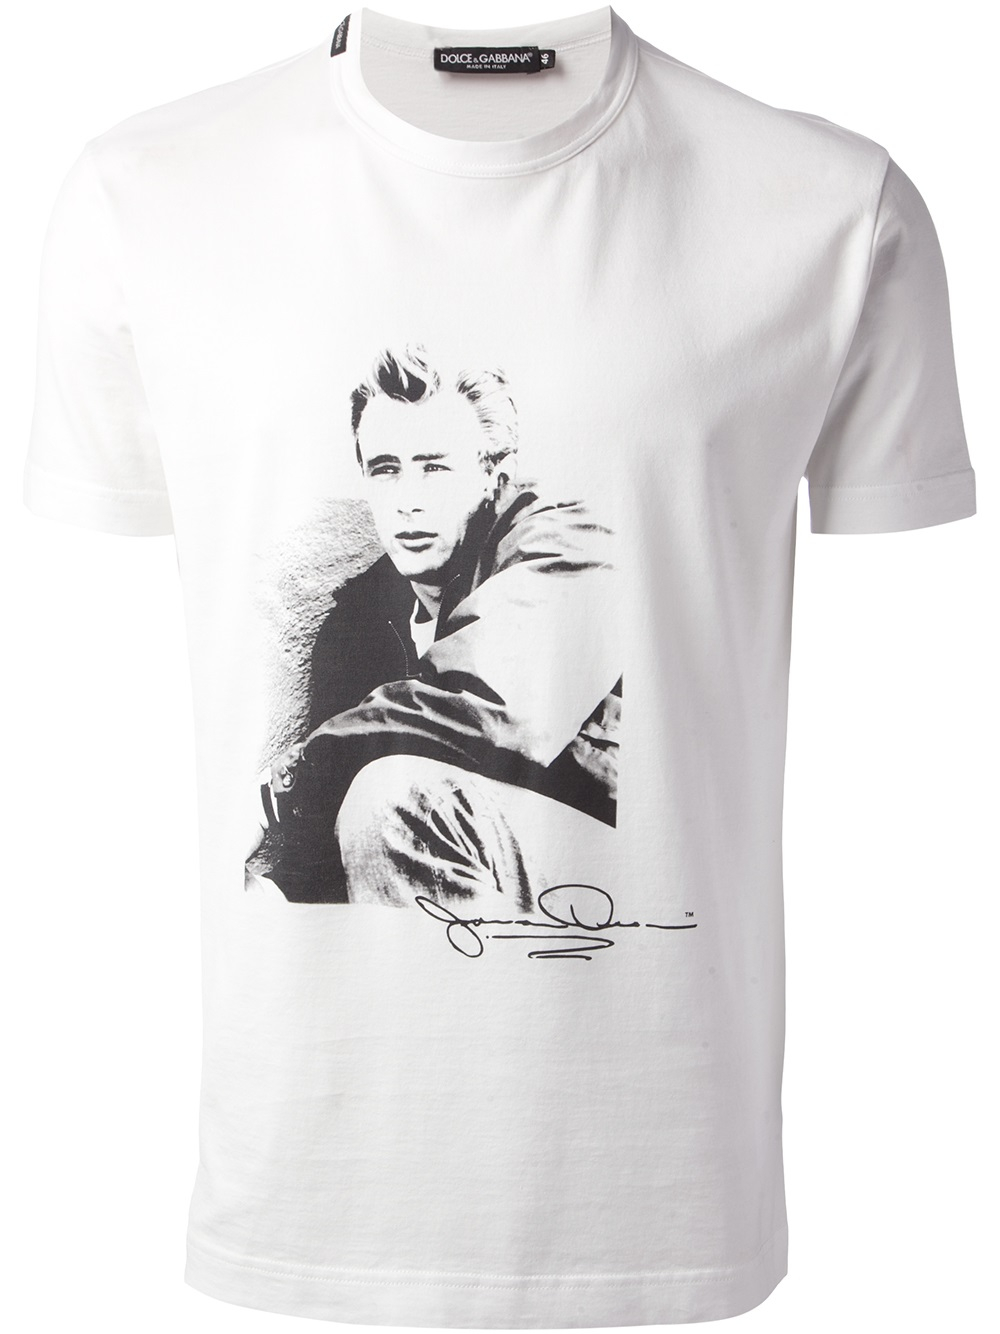 c264171402391f Dolce & Gabbana James Dean Tshirt in White for Men - Lyst